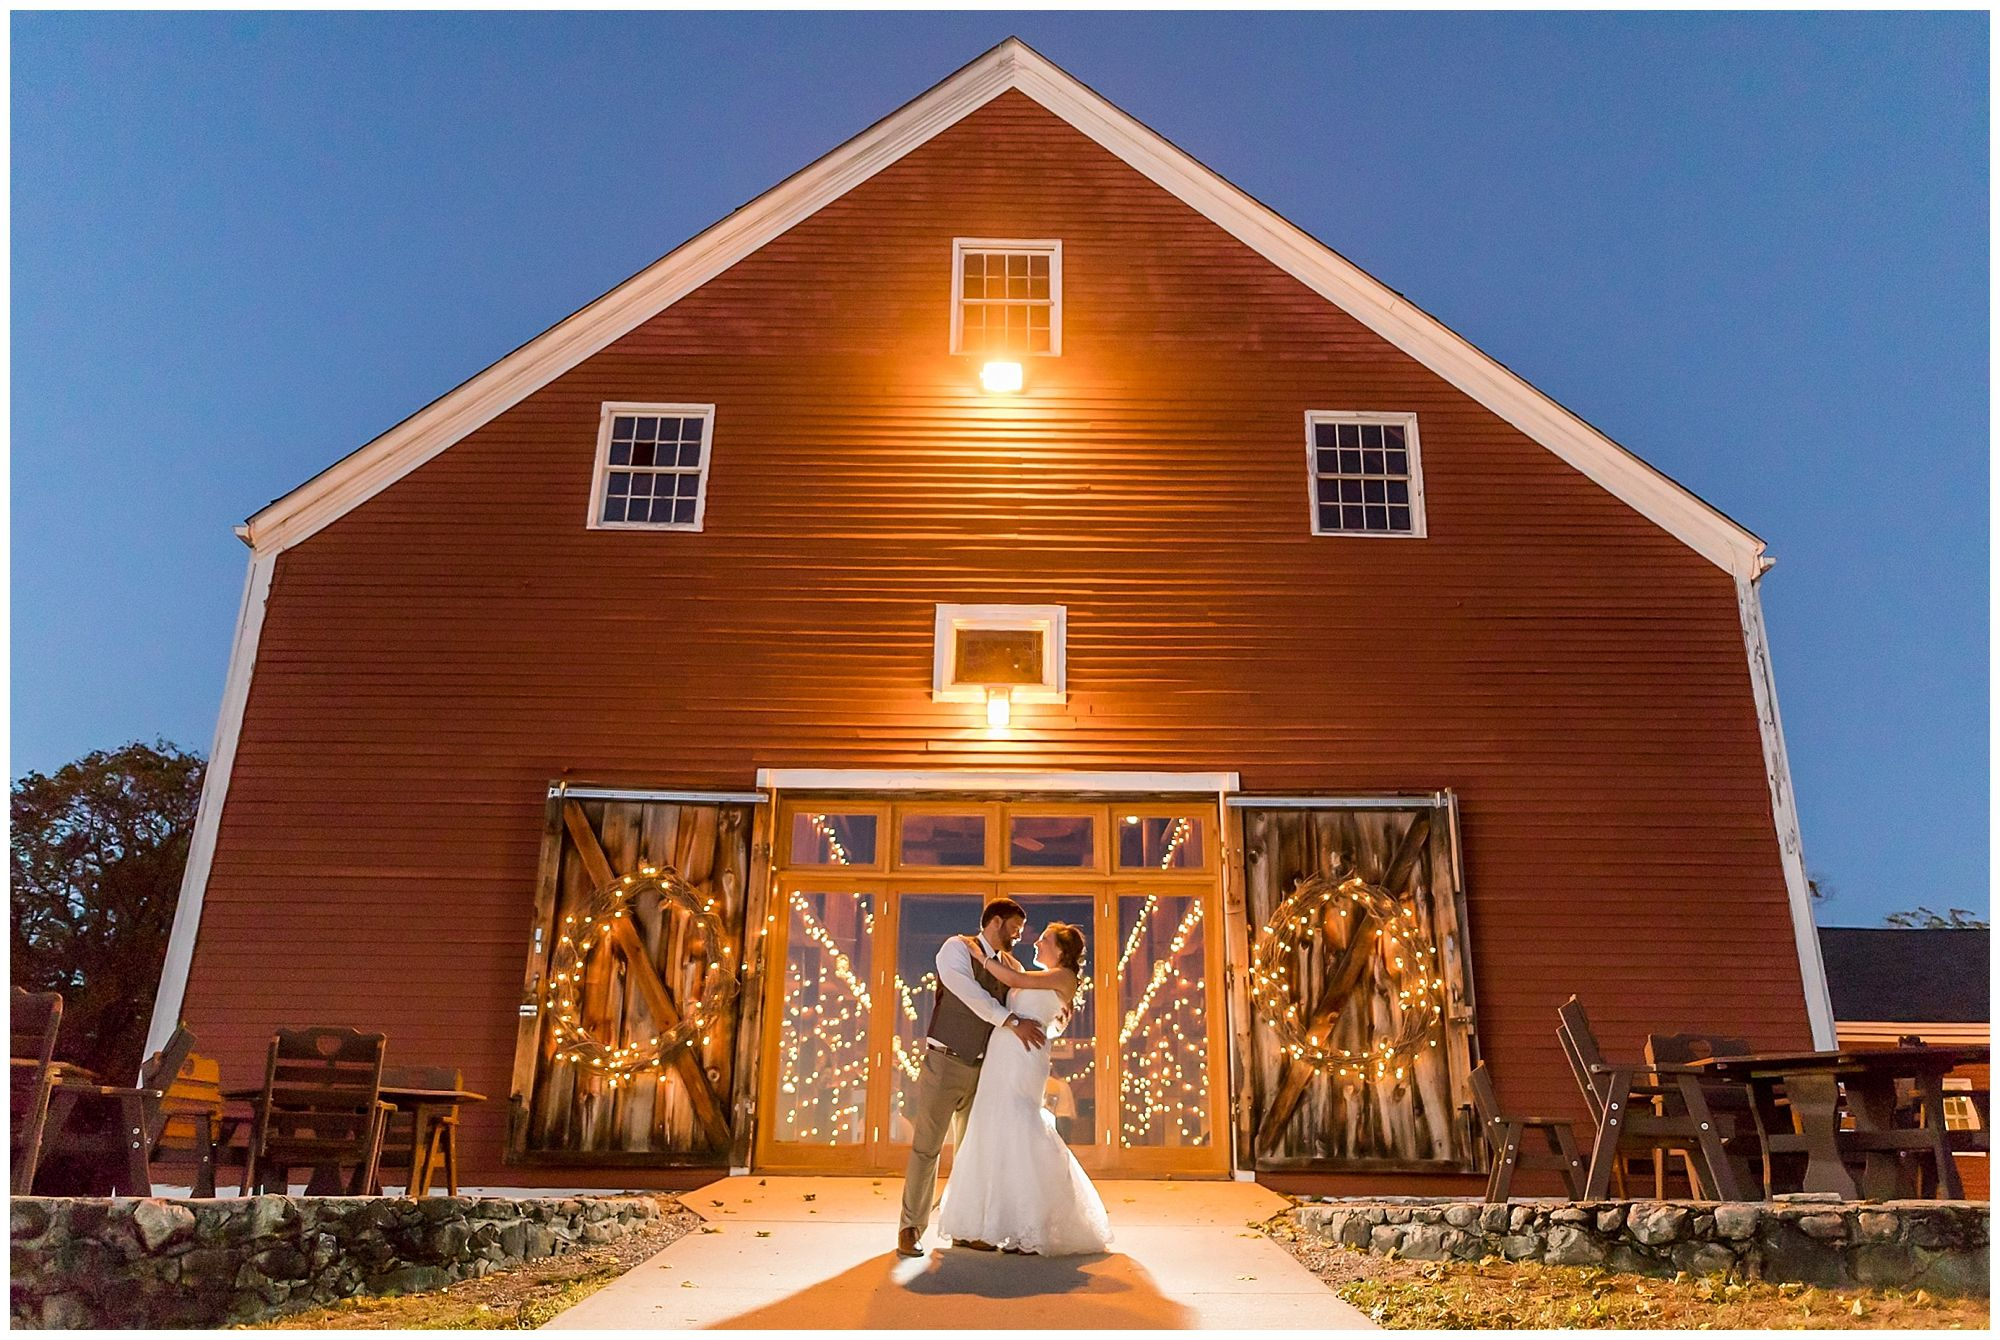 Wedding Photography at The Smith Barn at Brooksby Farm in ...